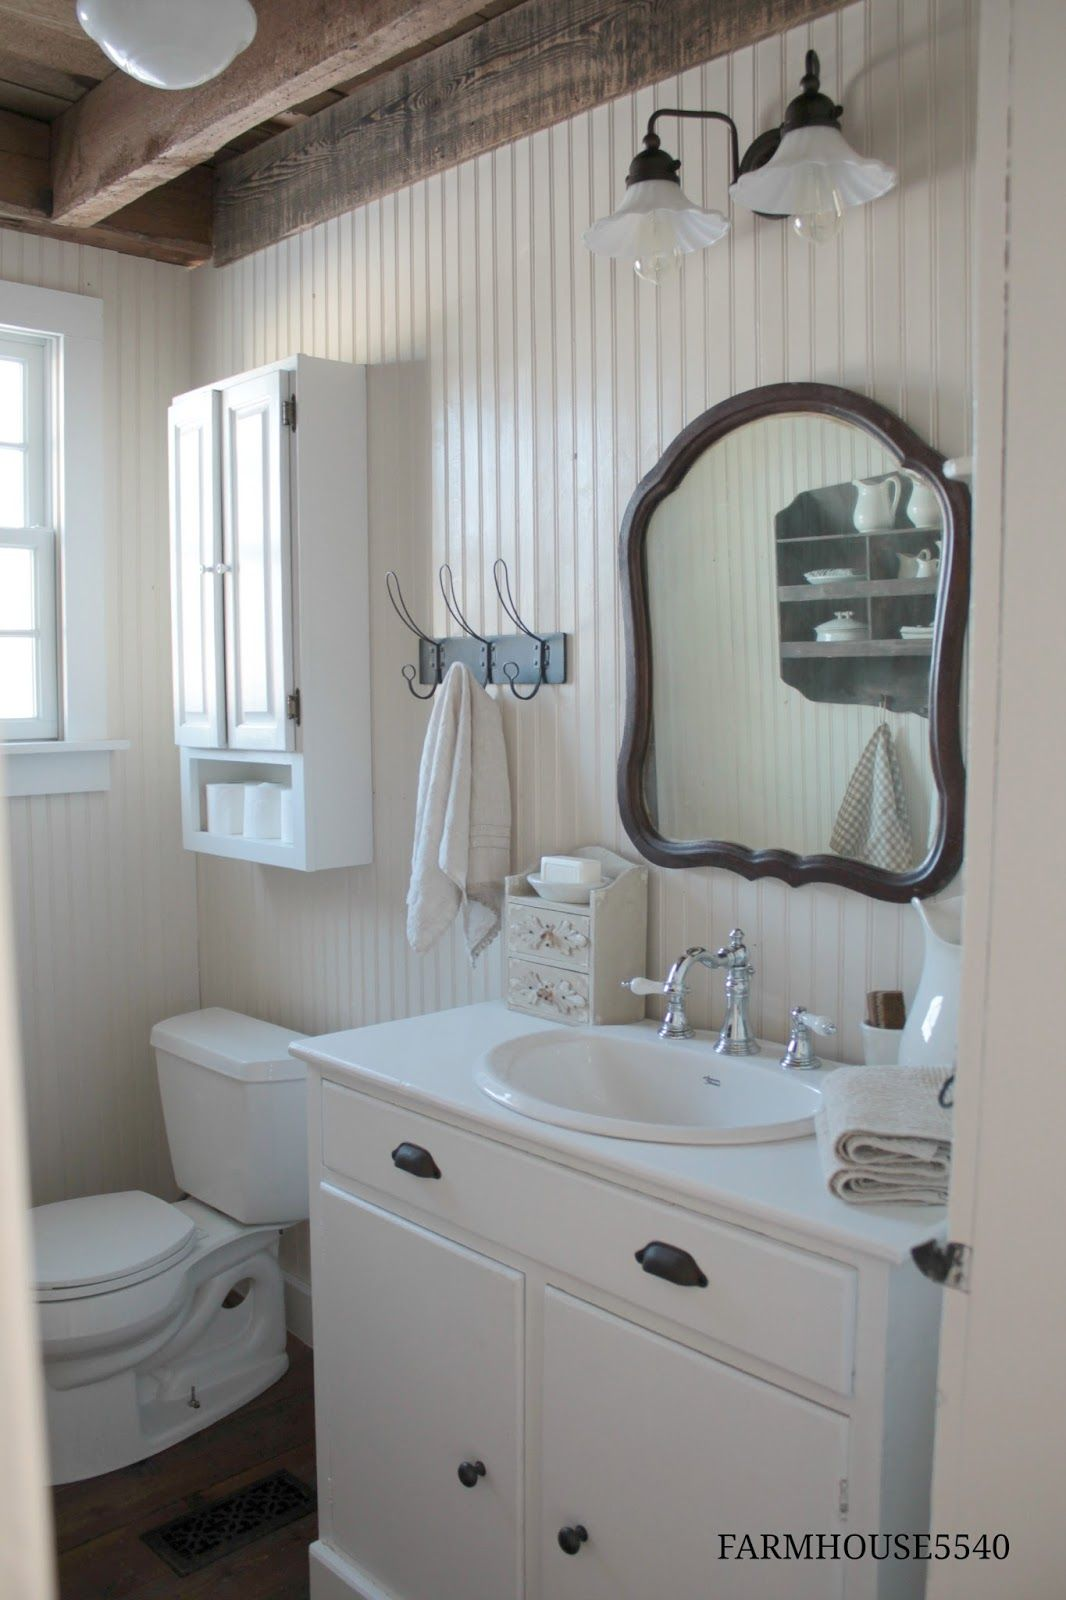 Actua Decor So Here It Is Our Farmhouse Powder Room Even Though